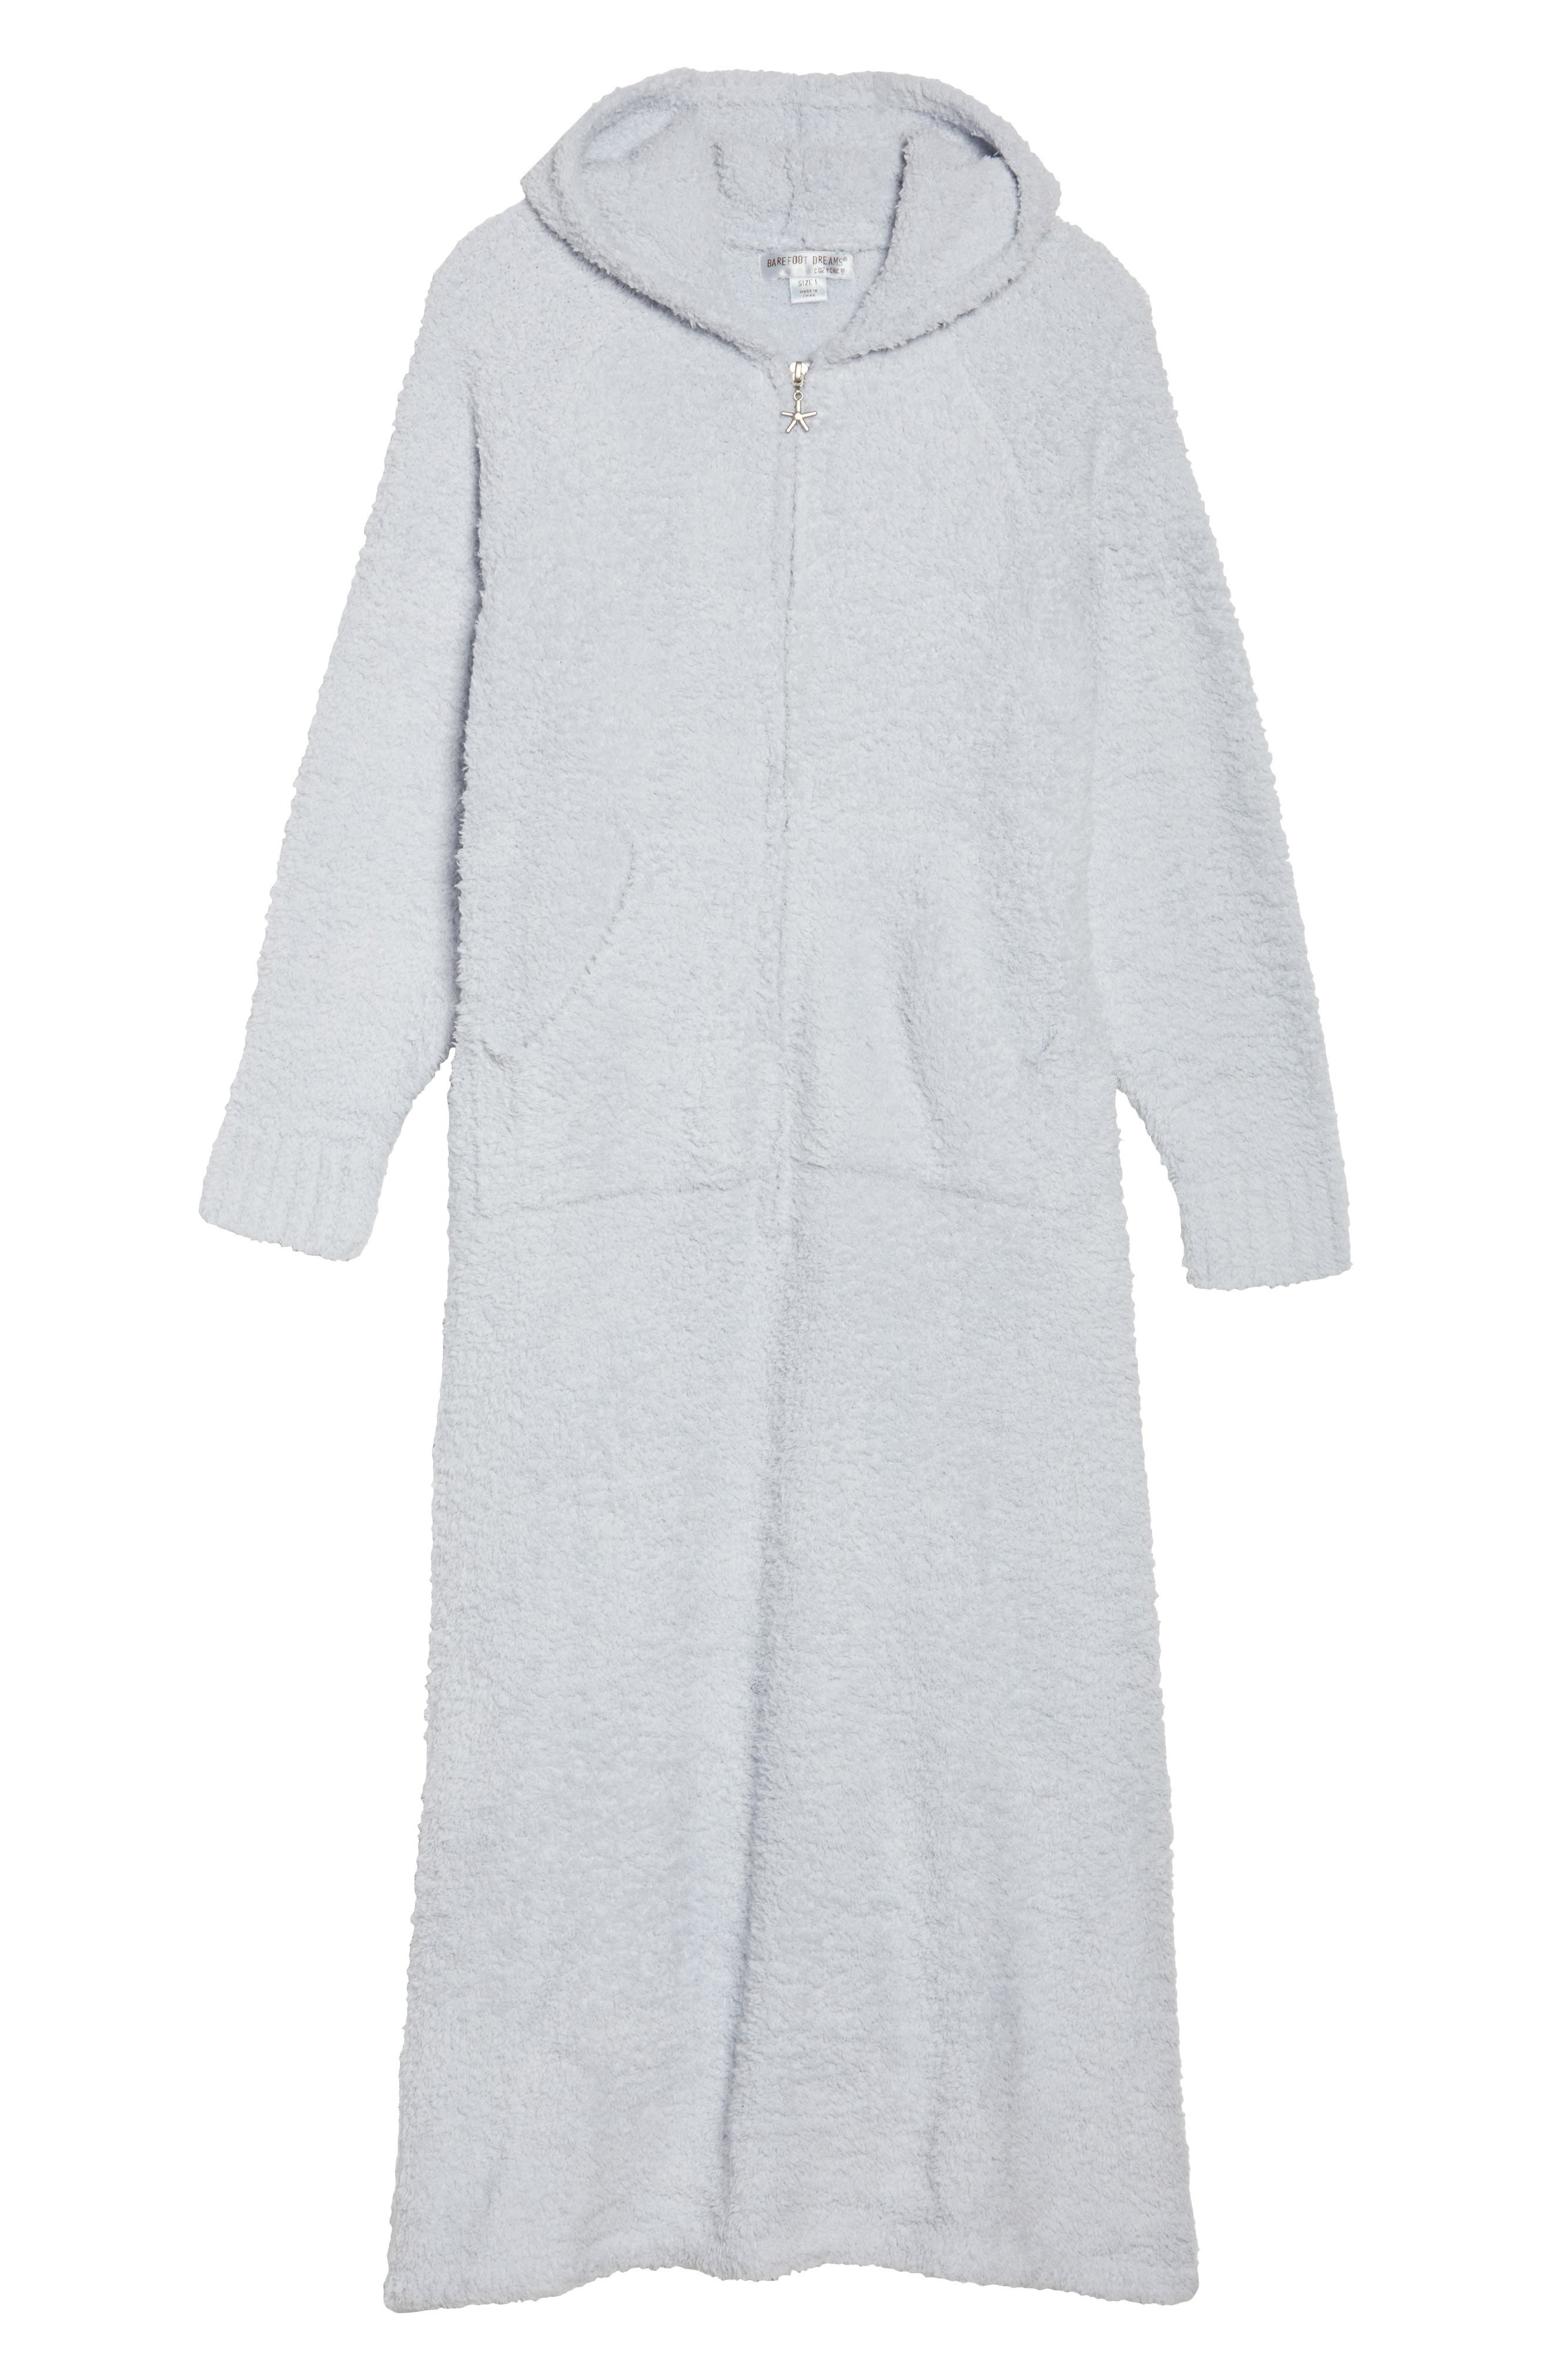 CozyChic<sup>®</sup> Hooded Zip Robe,                             Alternate thumbnail 6, color,                             BLUE